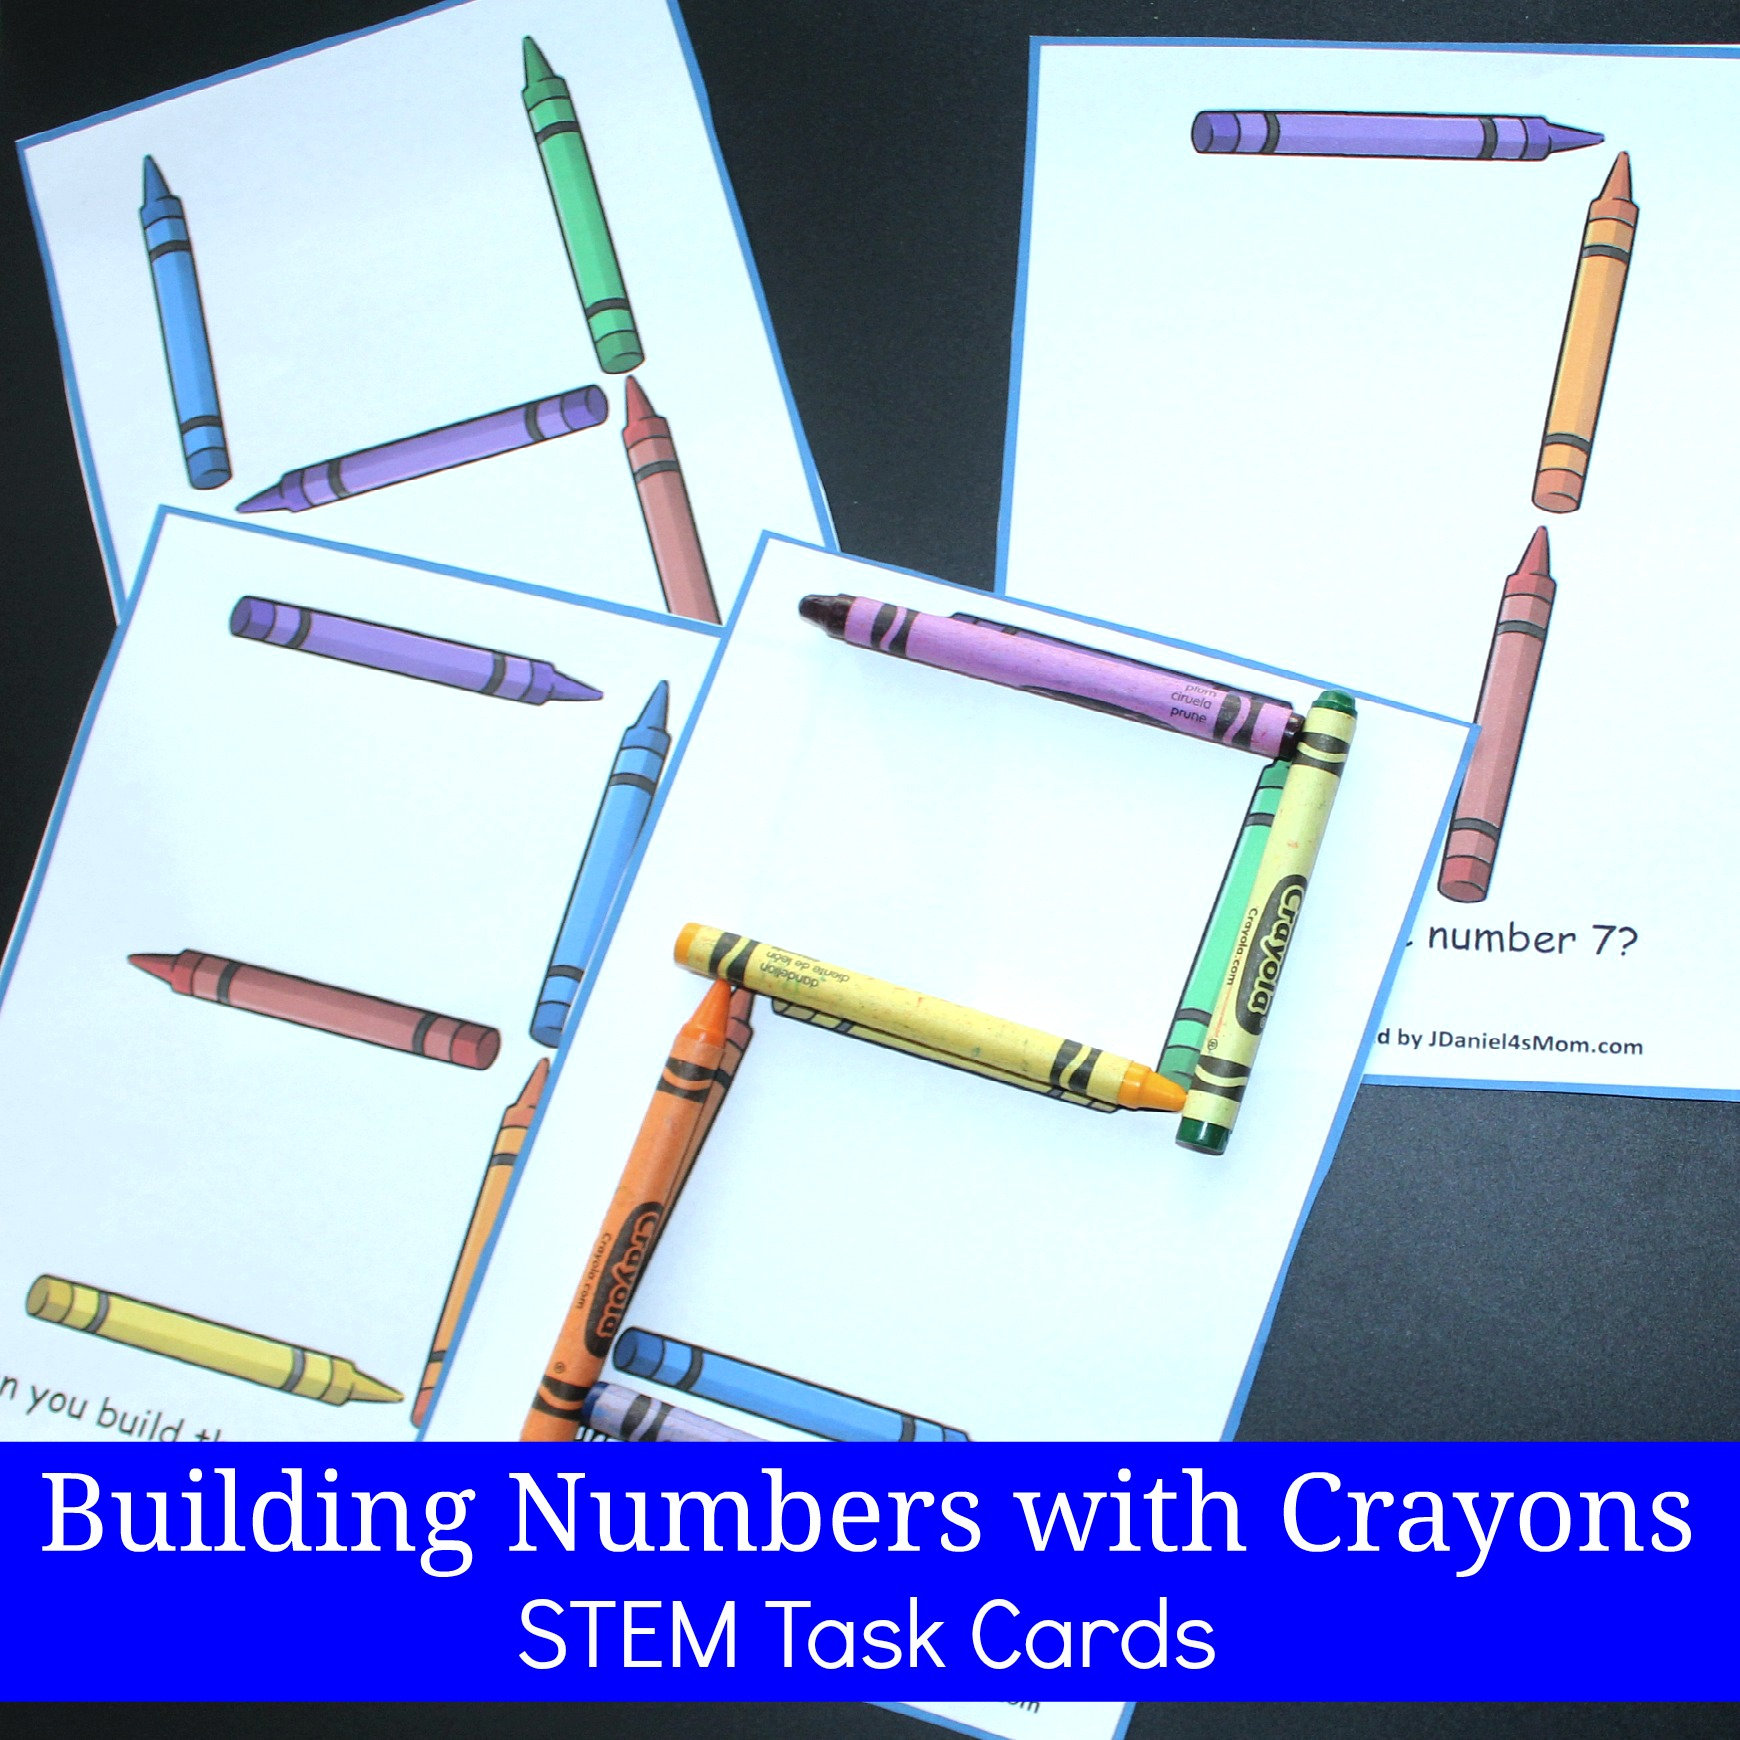 Building Numbers with Crayons STEM Task Cards